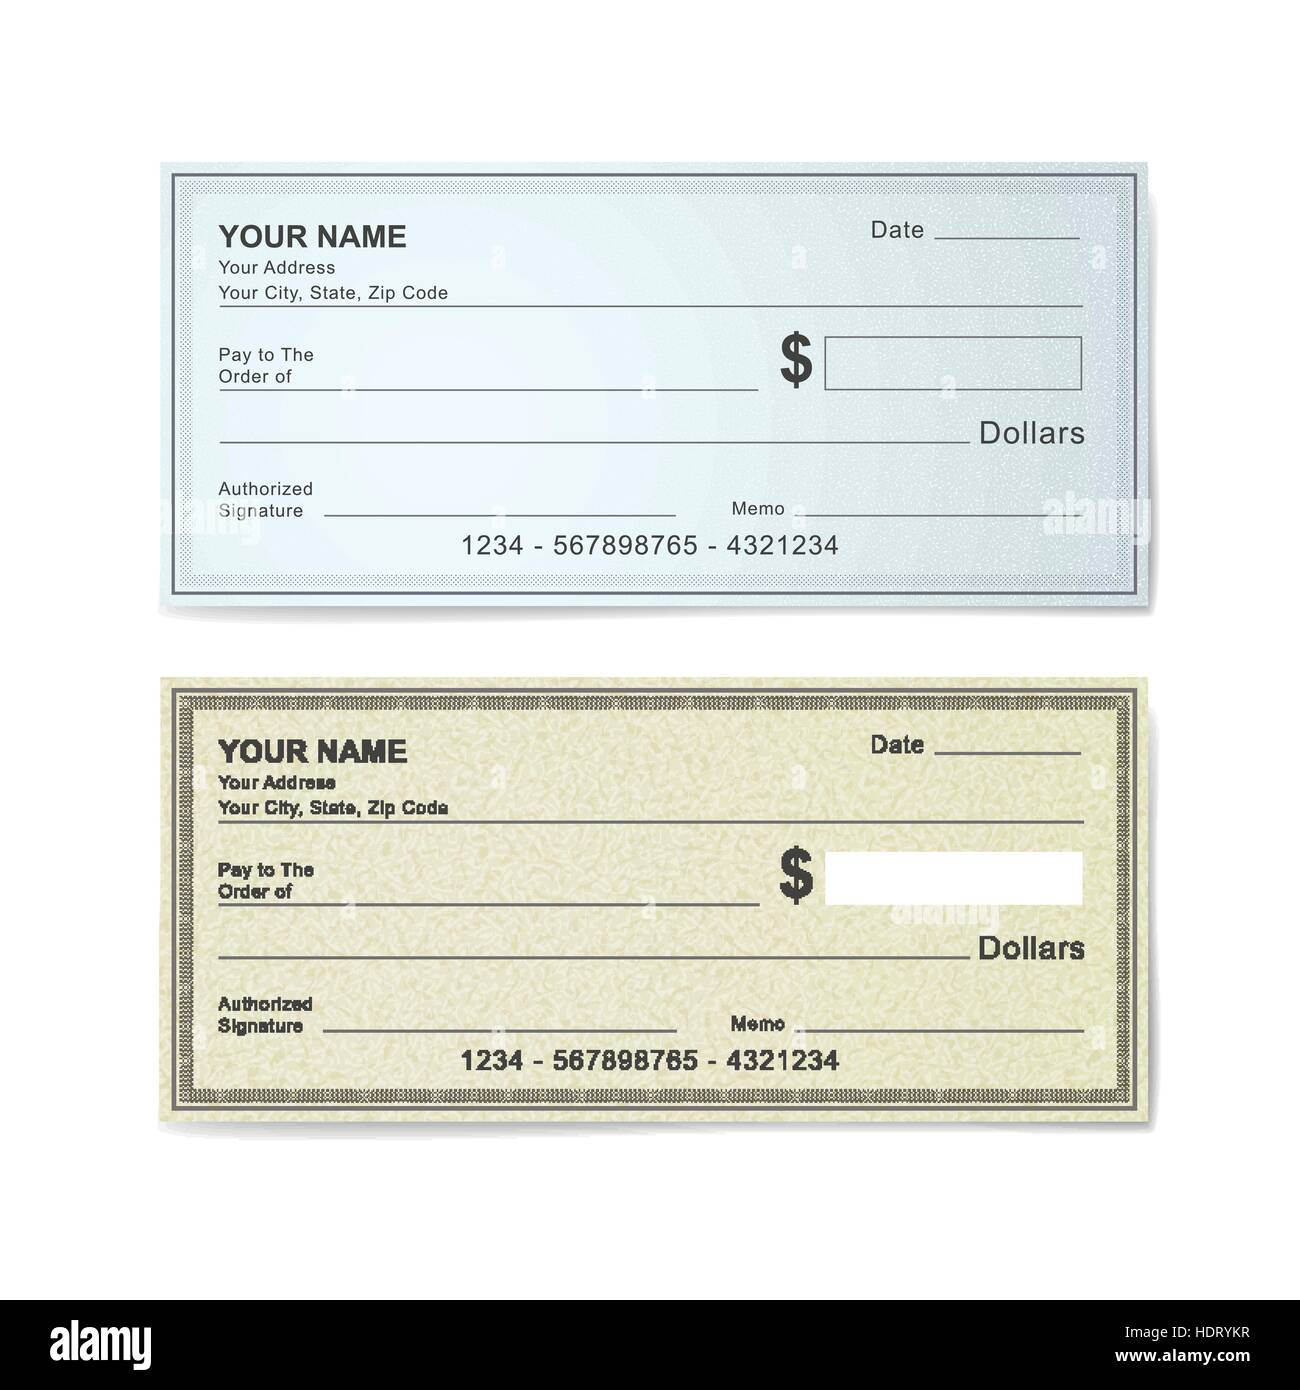 blank bank check template isolated on white stock vector art